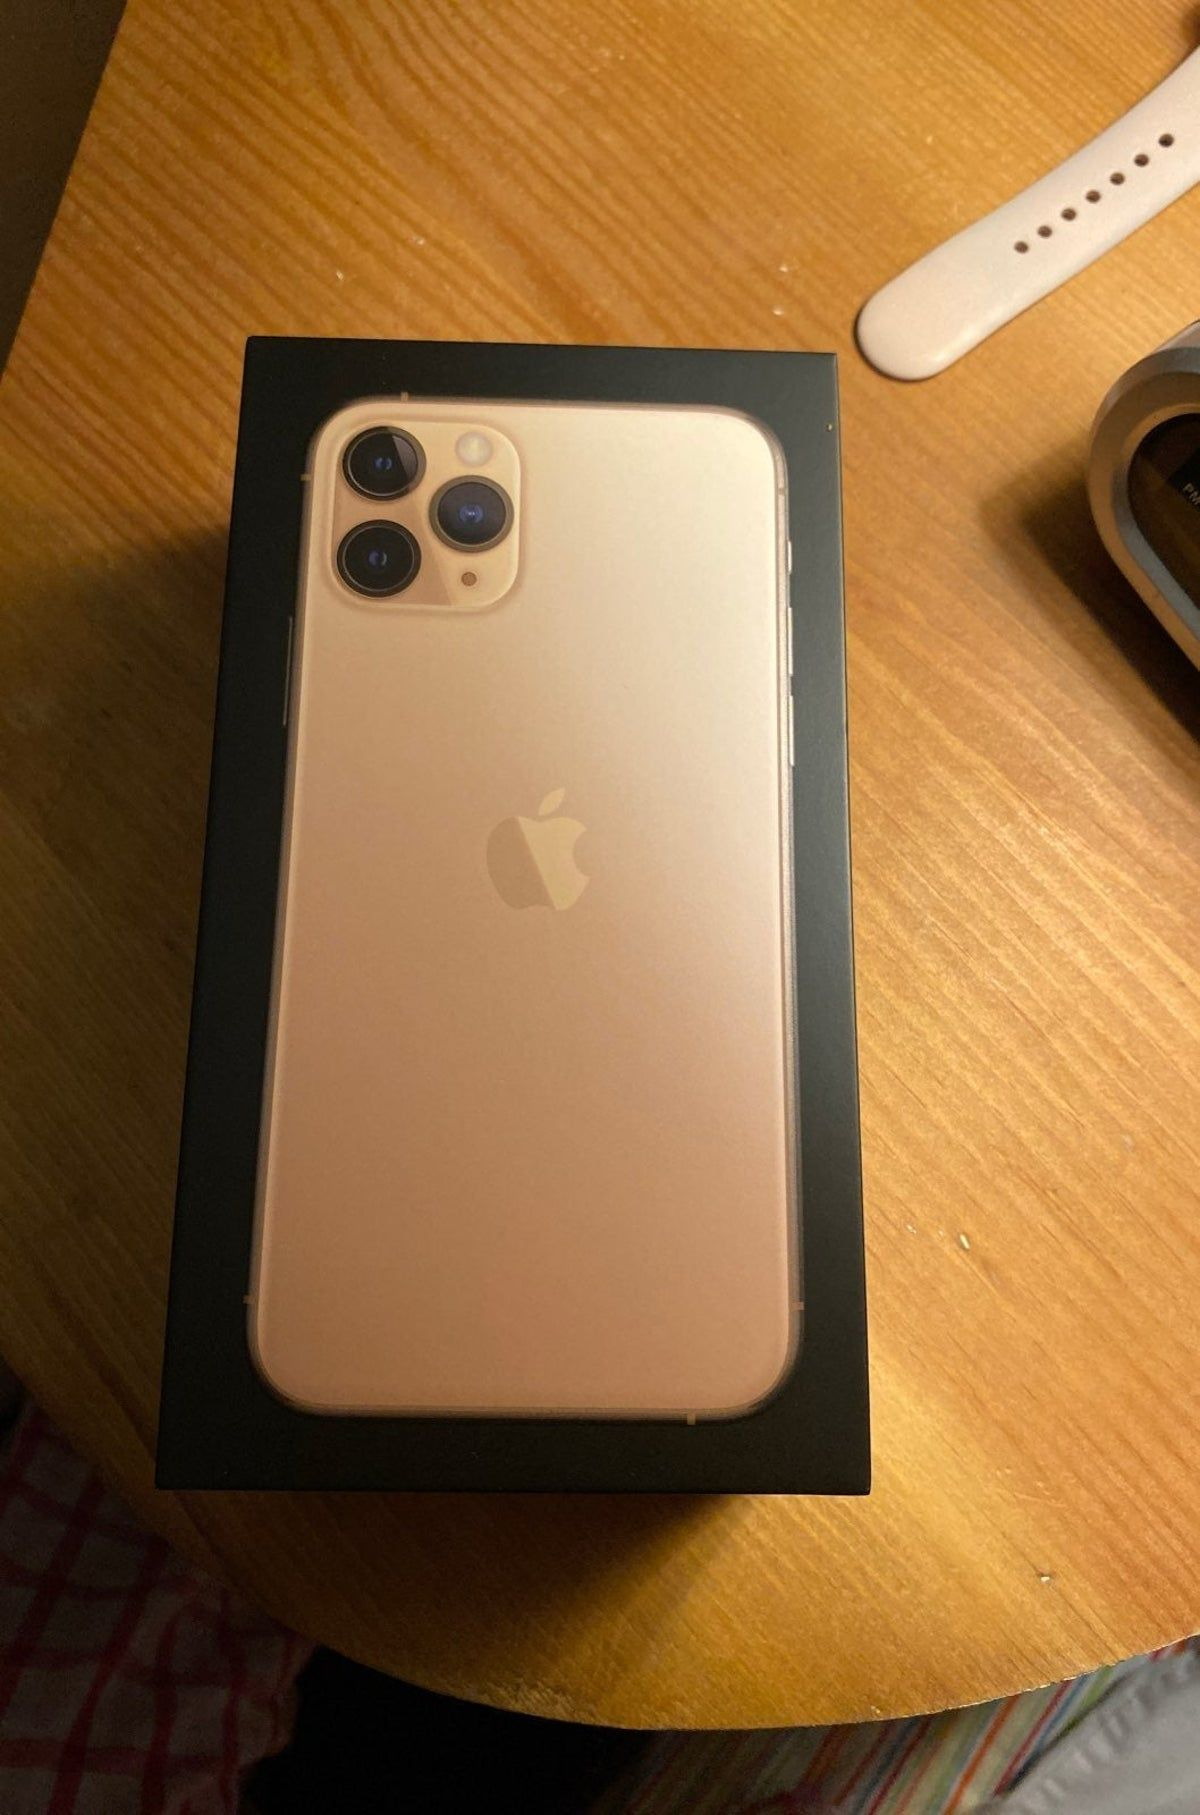 Iphone 11 Pro Iphone Iphone Gadgets Iphone 11